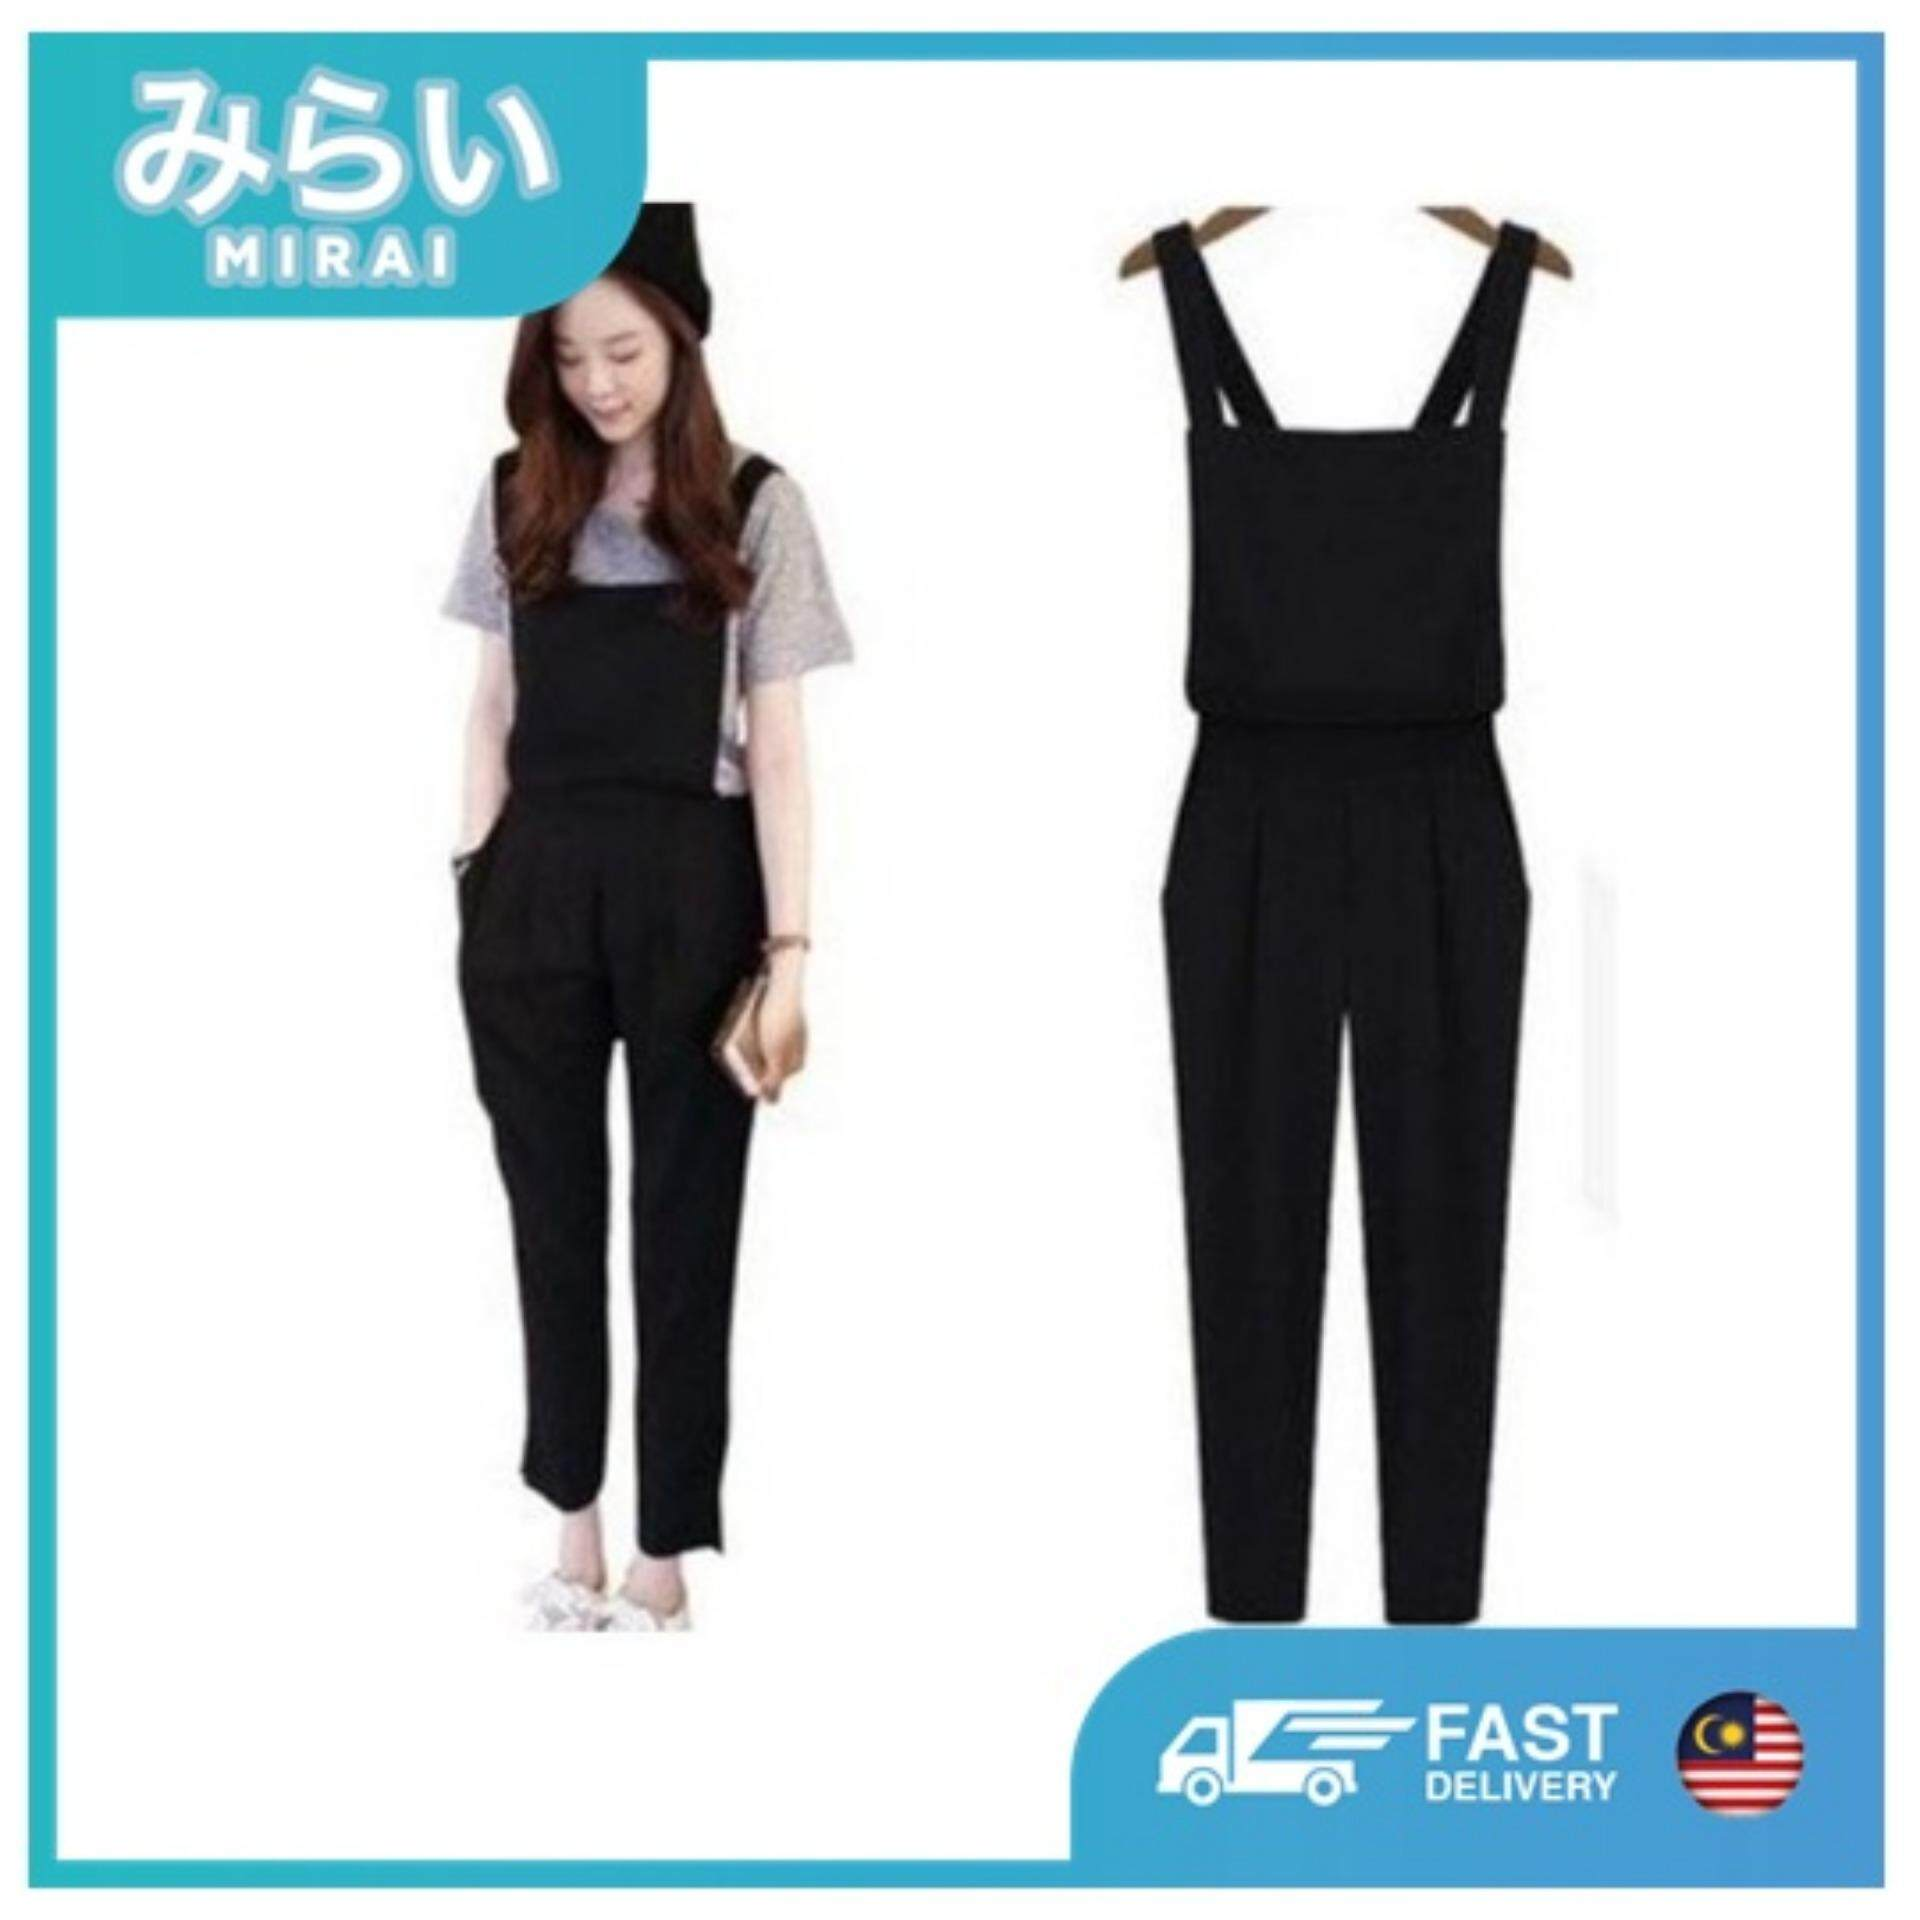 f98e03b9a38 Women s Jumpsuits   Playsuits - Buy Women s Jumpsuits   Playsuits at ...